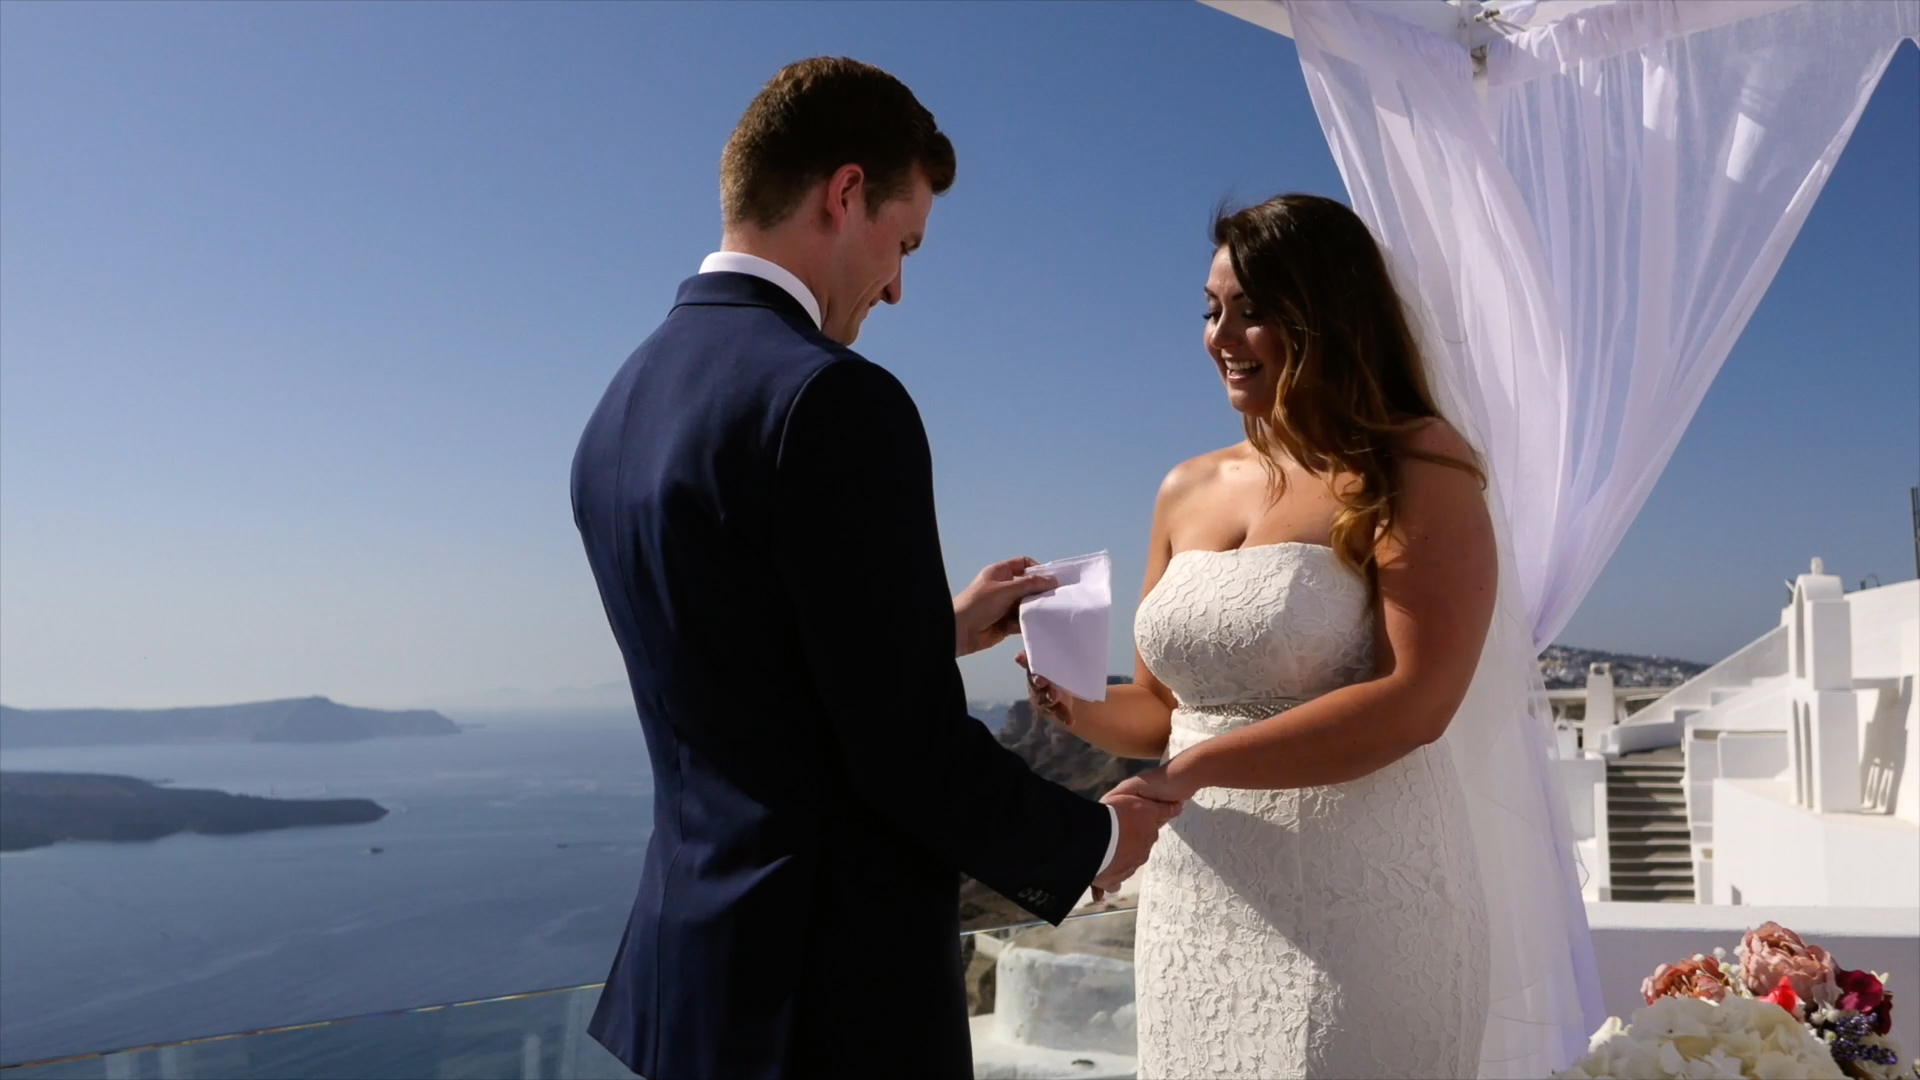 Santorini Wedding Videographer captures crying bride, as her groom places a tissue in her hand from his top pocket.